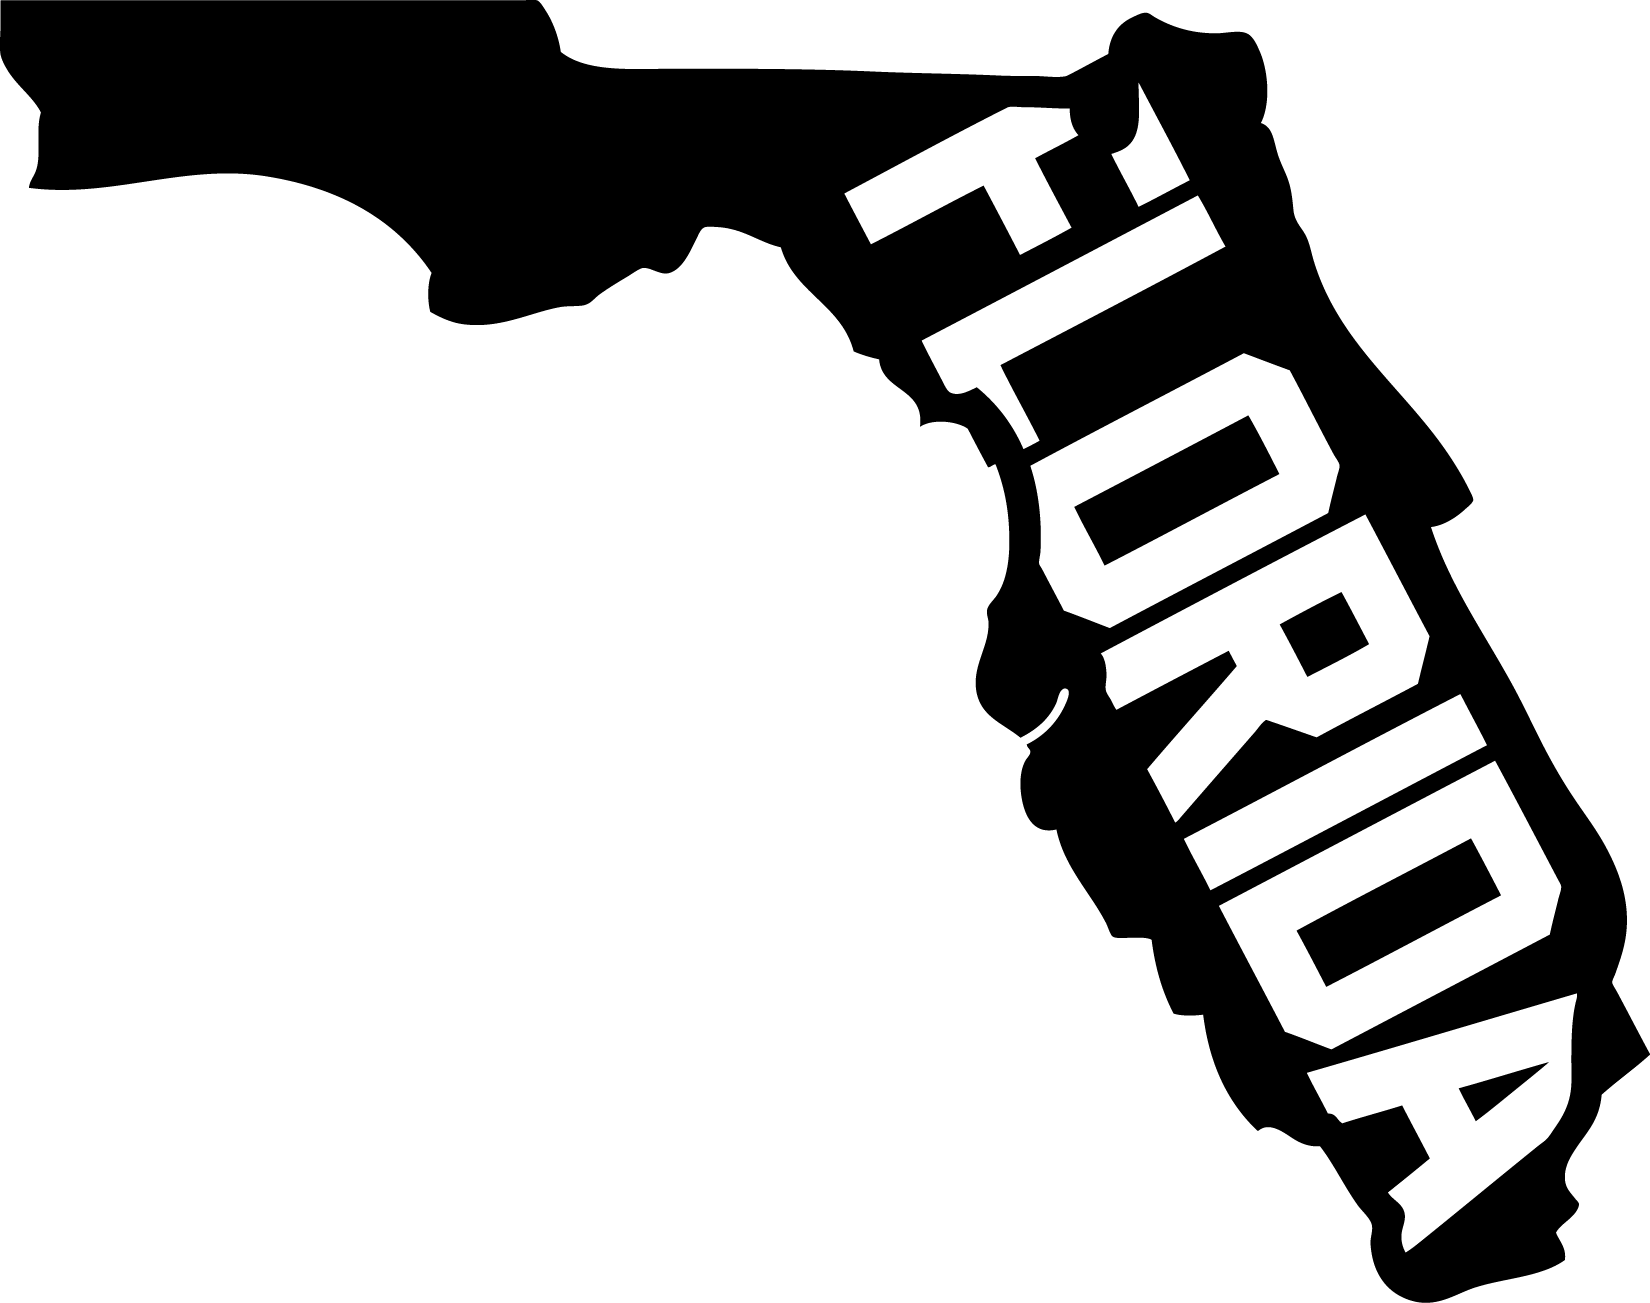 collection of florida. Usa clipart strong state government